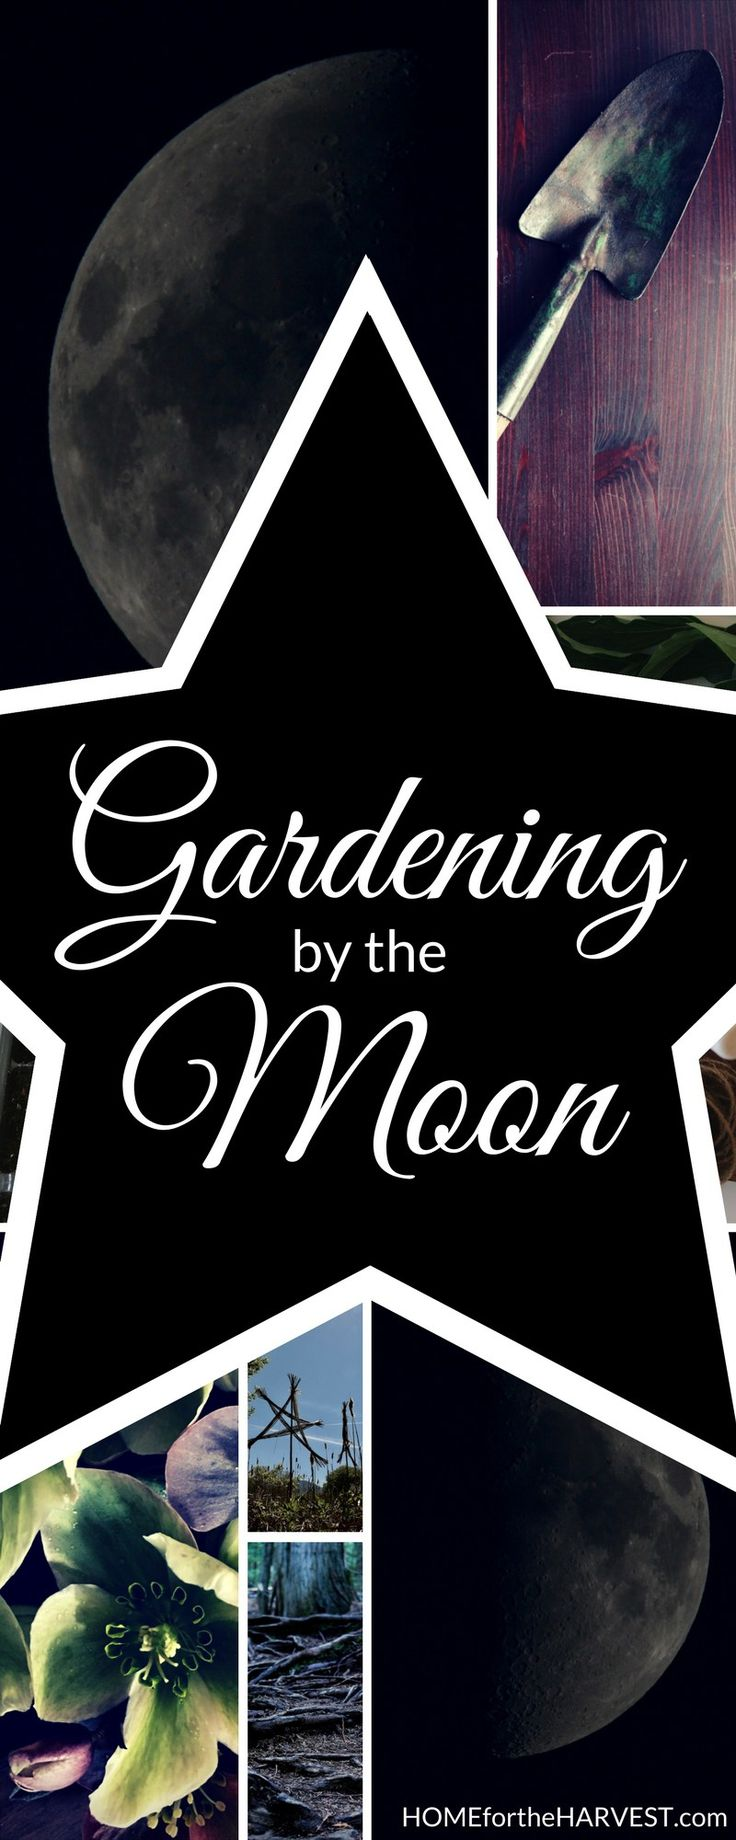 Aligning your garden planting schedule with the lunar cycles - includes basic, intermediate, and advanced methods of gardening by the moon | Home for the Harvest